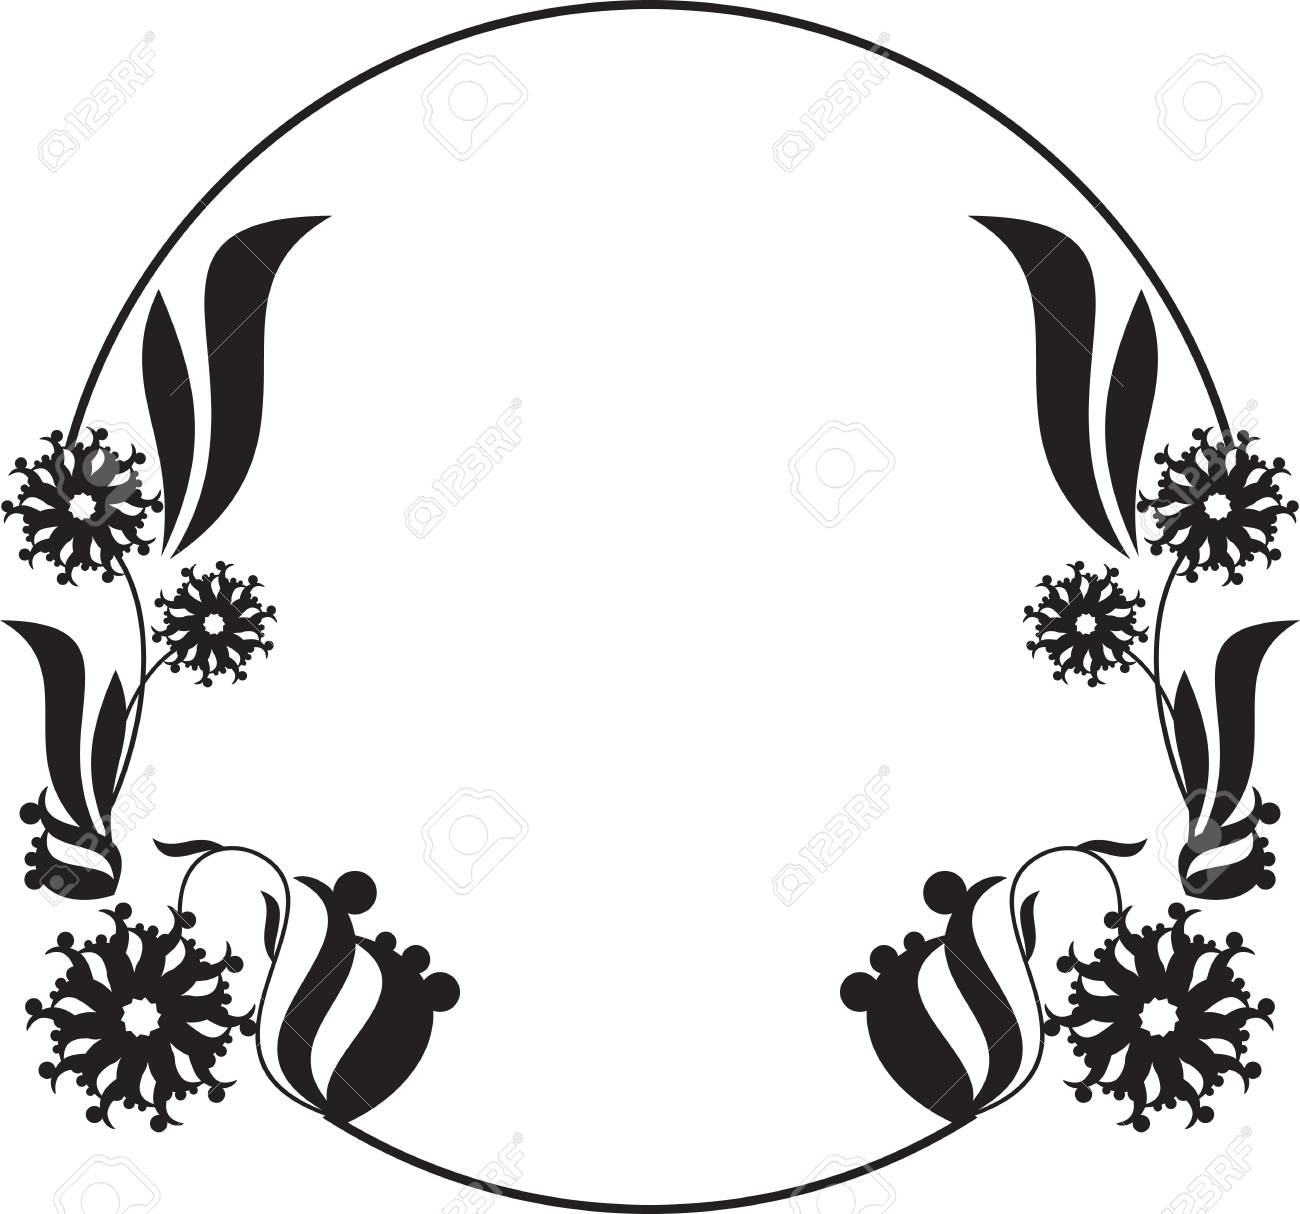 black and white round frame with floral silhouettes copy space rh 123rf com flame vectors frame vector png